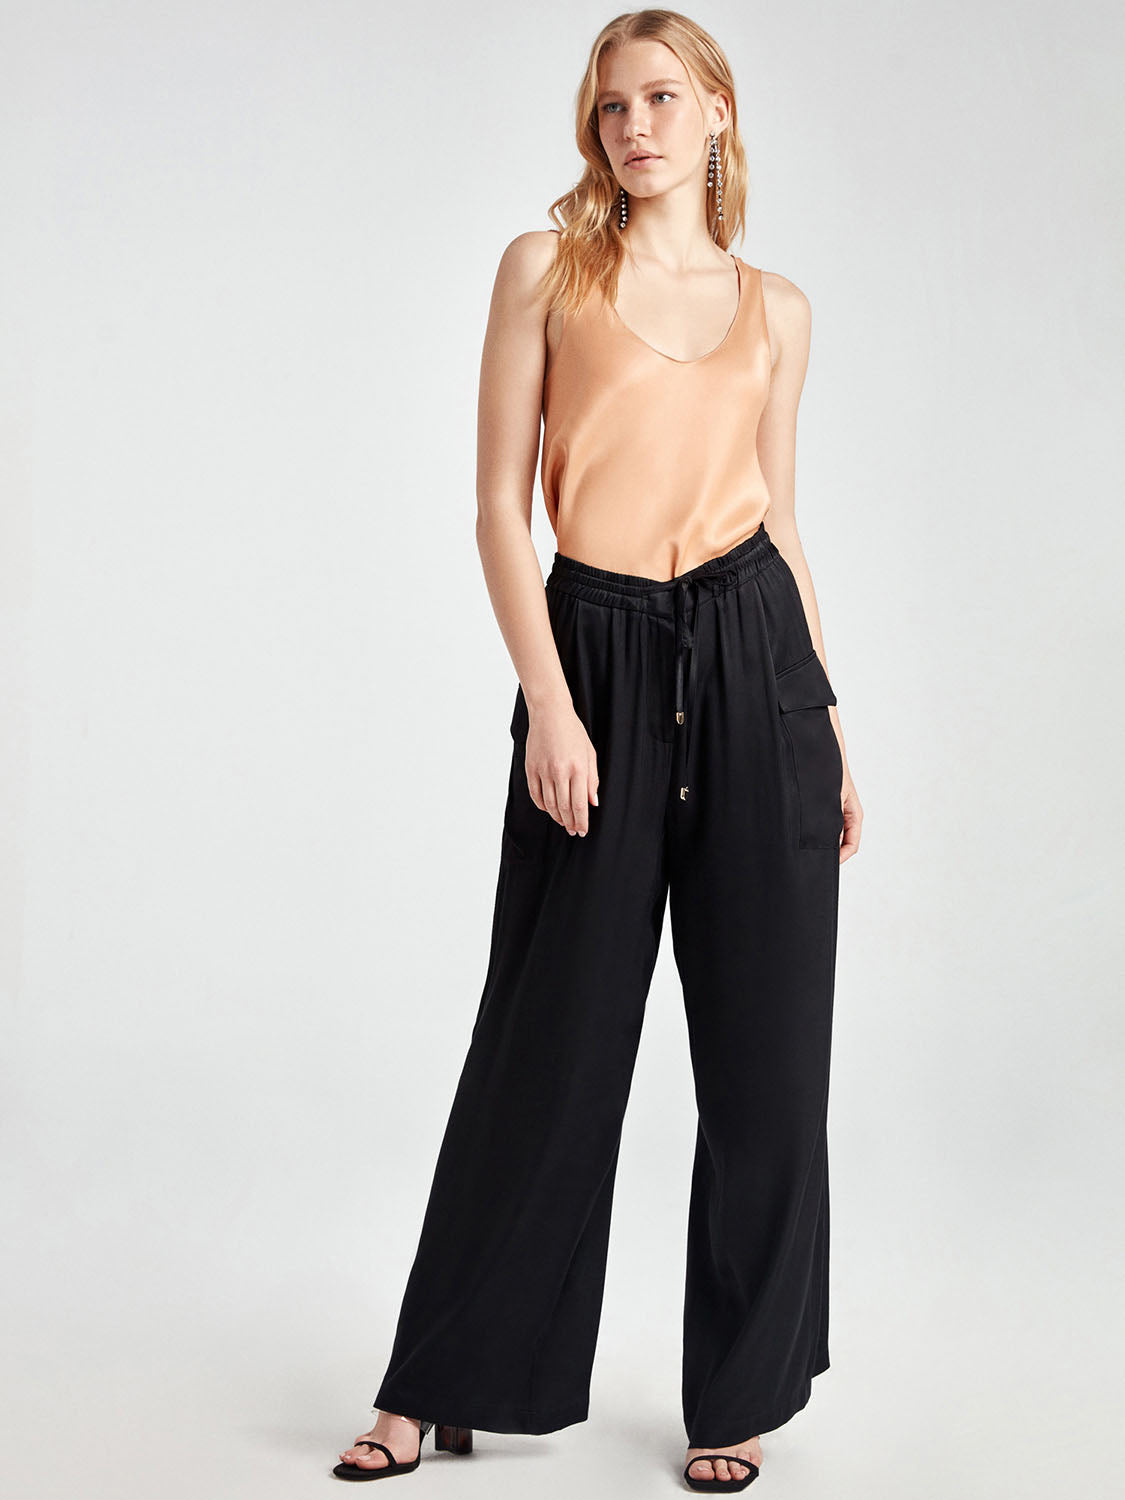 Satin Effect Pants